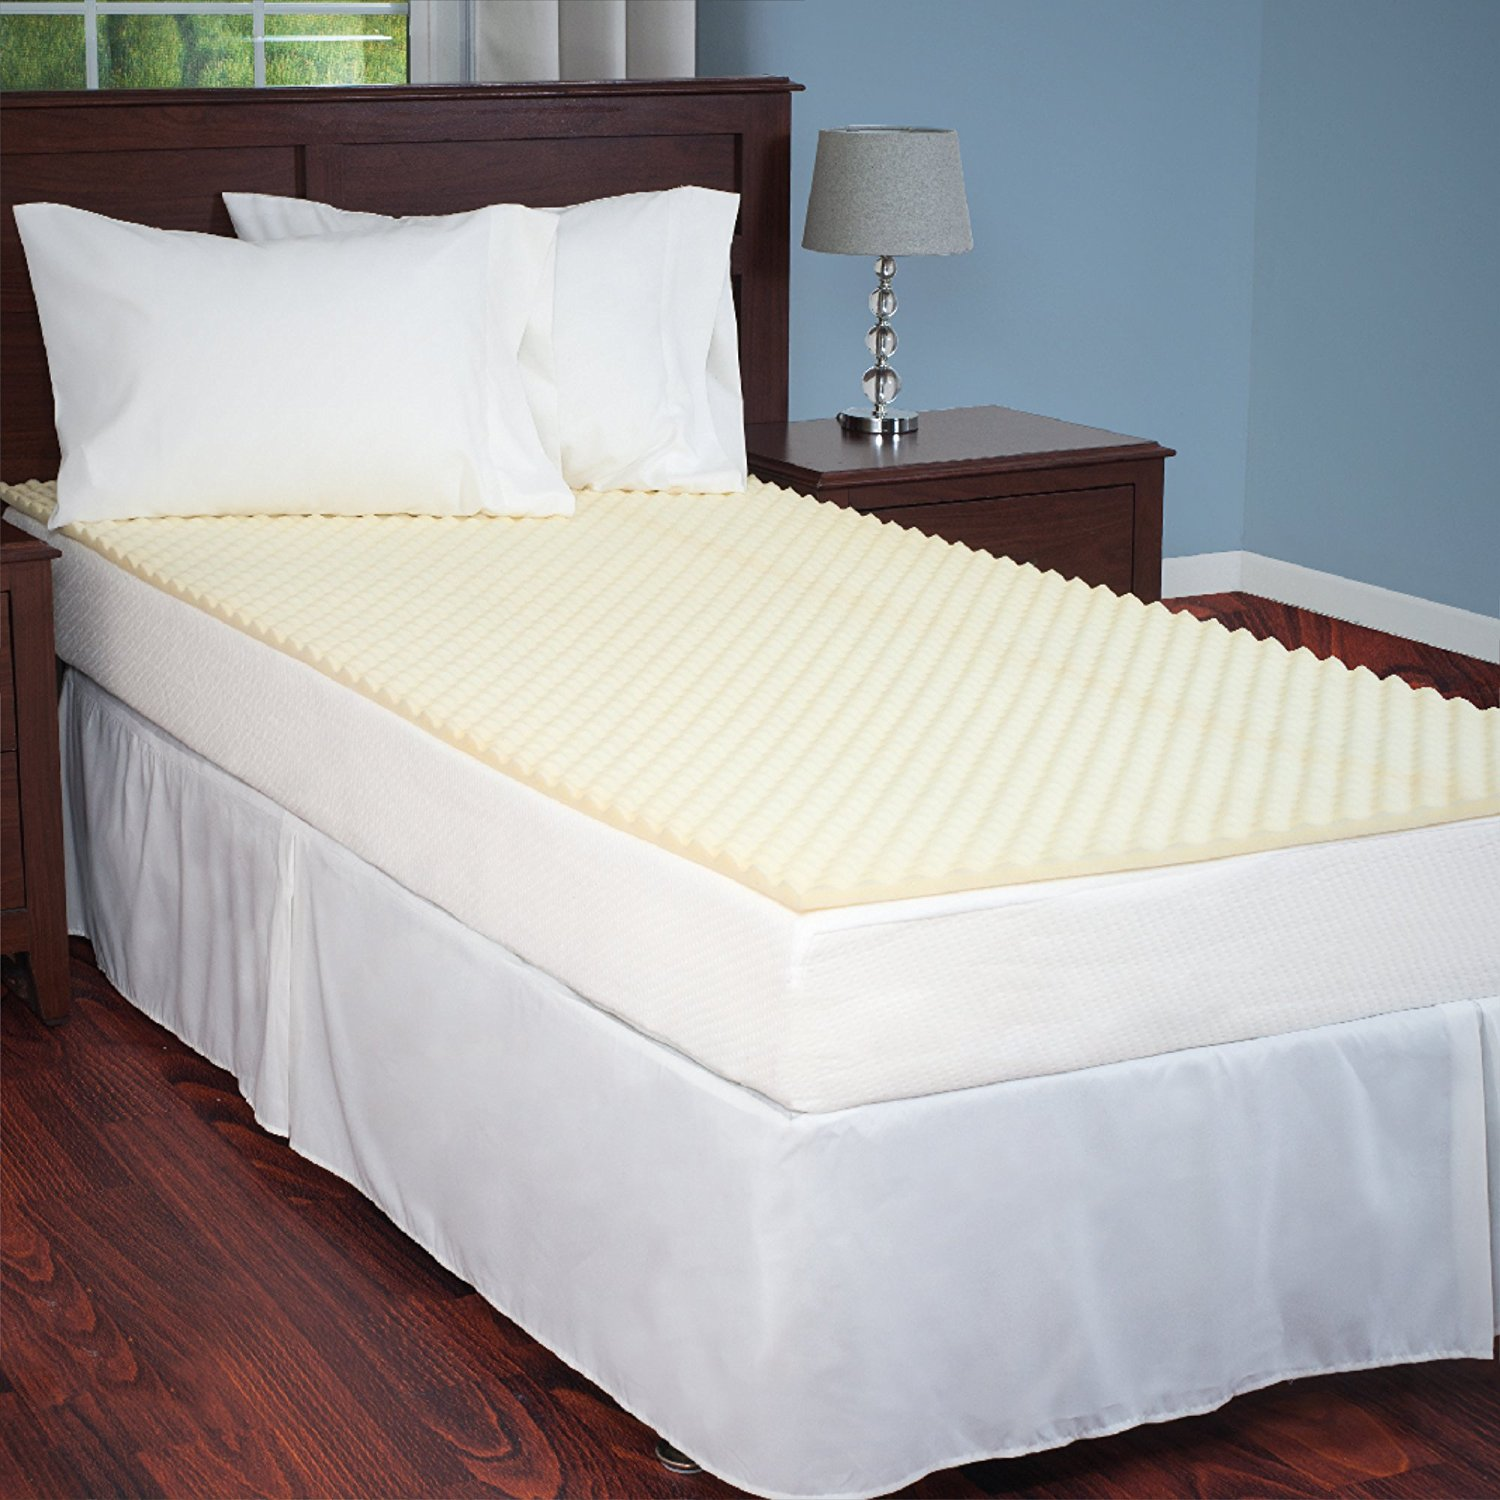 Egg Crate Mattress Topper Twin XL designed to add extra comfort